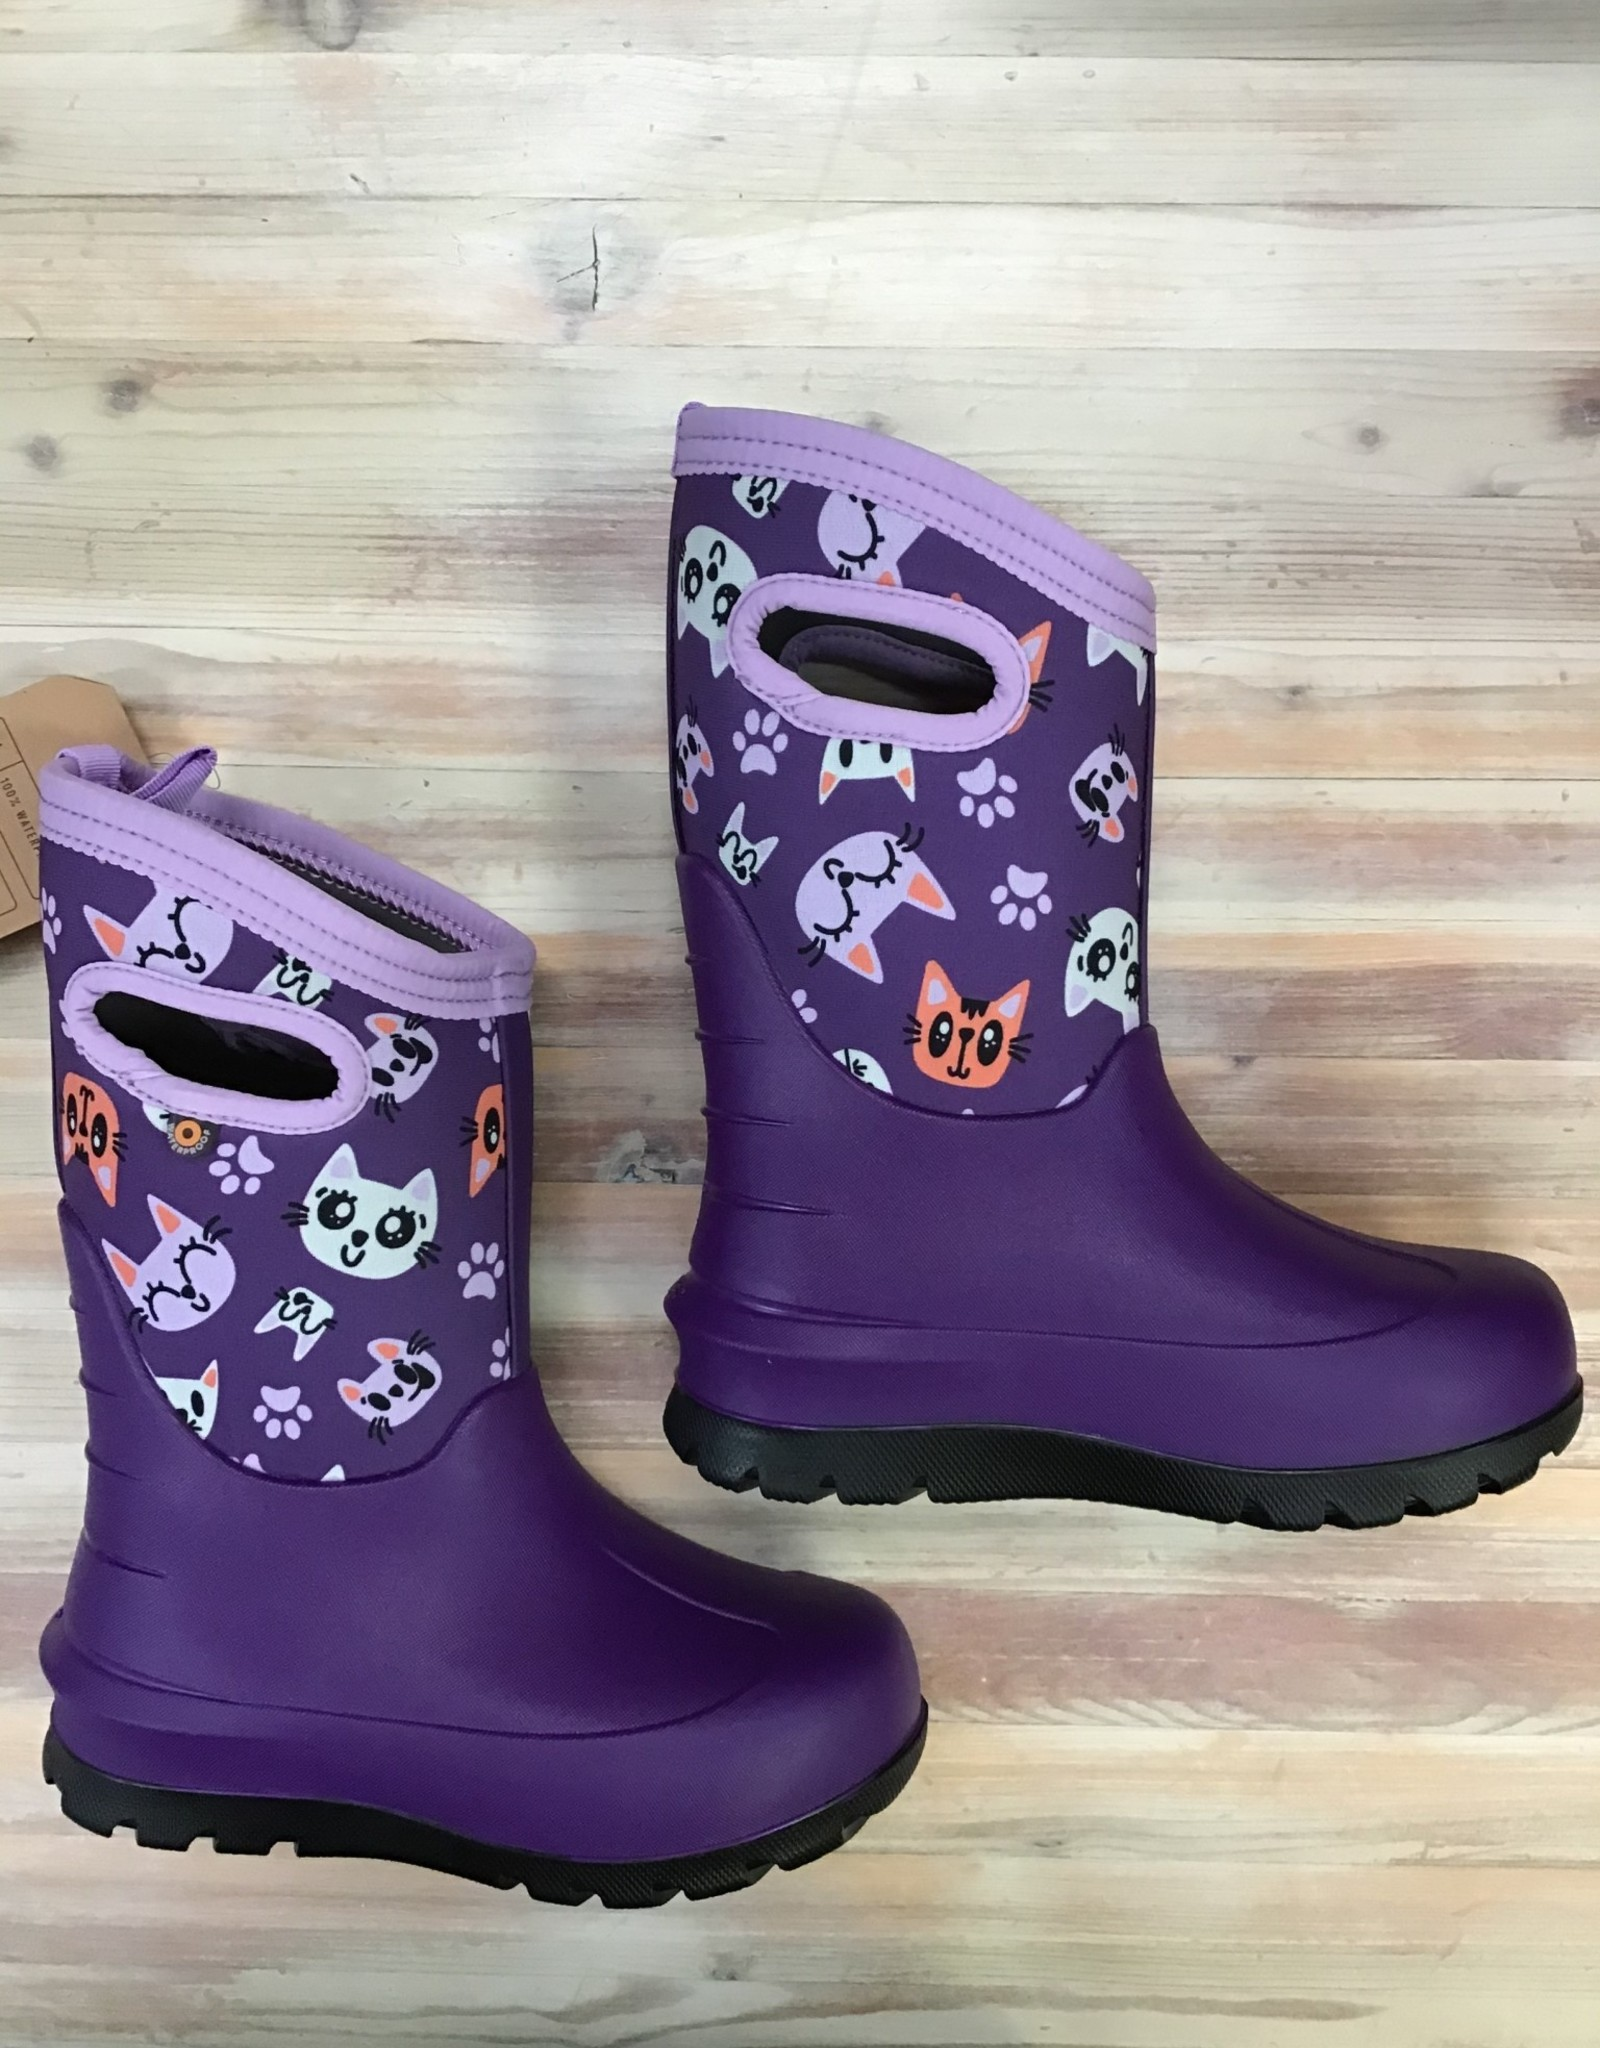 Bogs Bogs Neo Classic Kitty Kids'